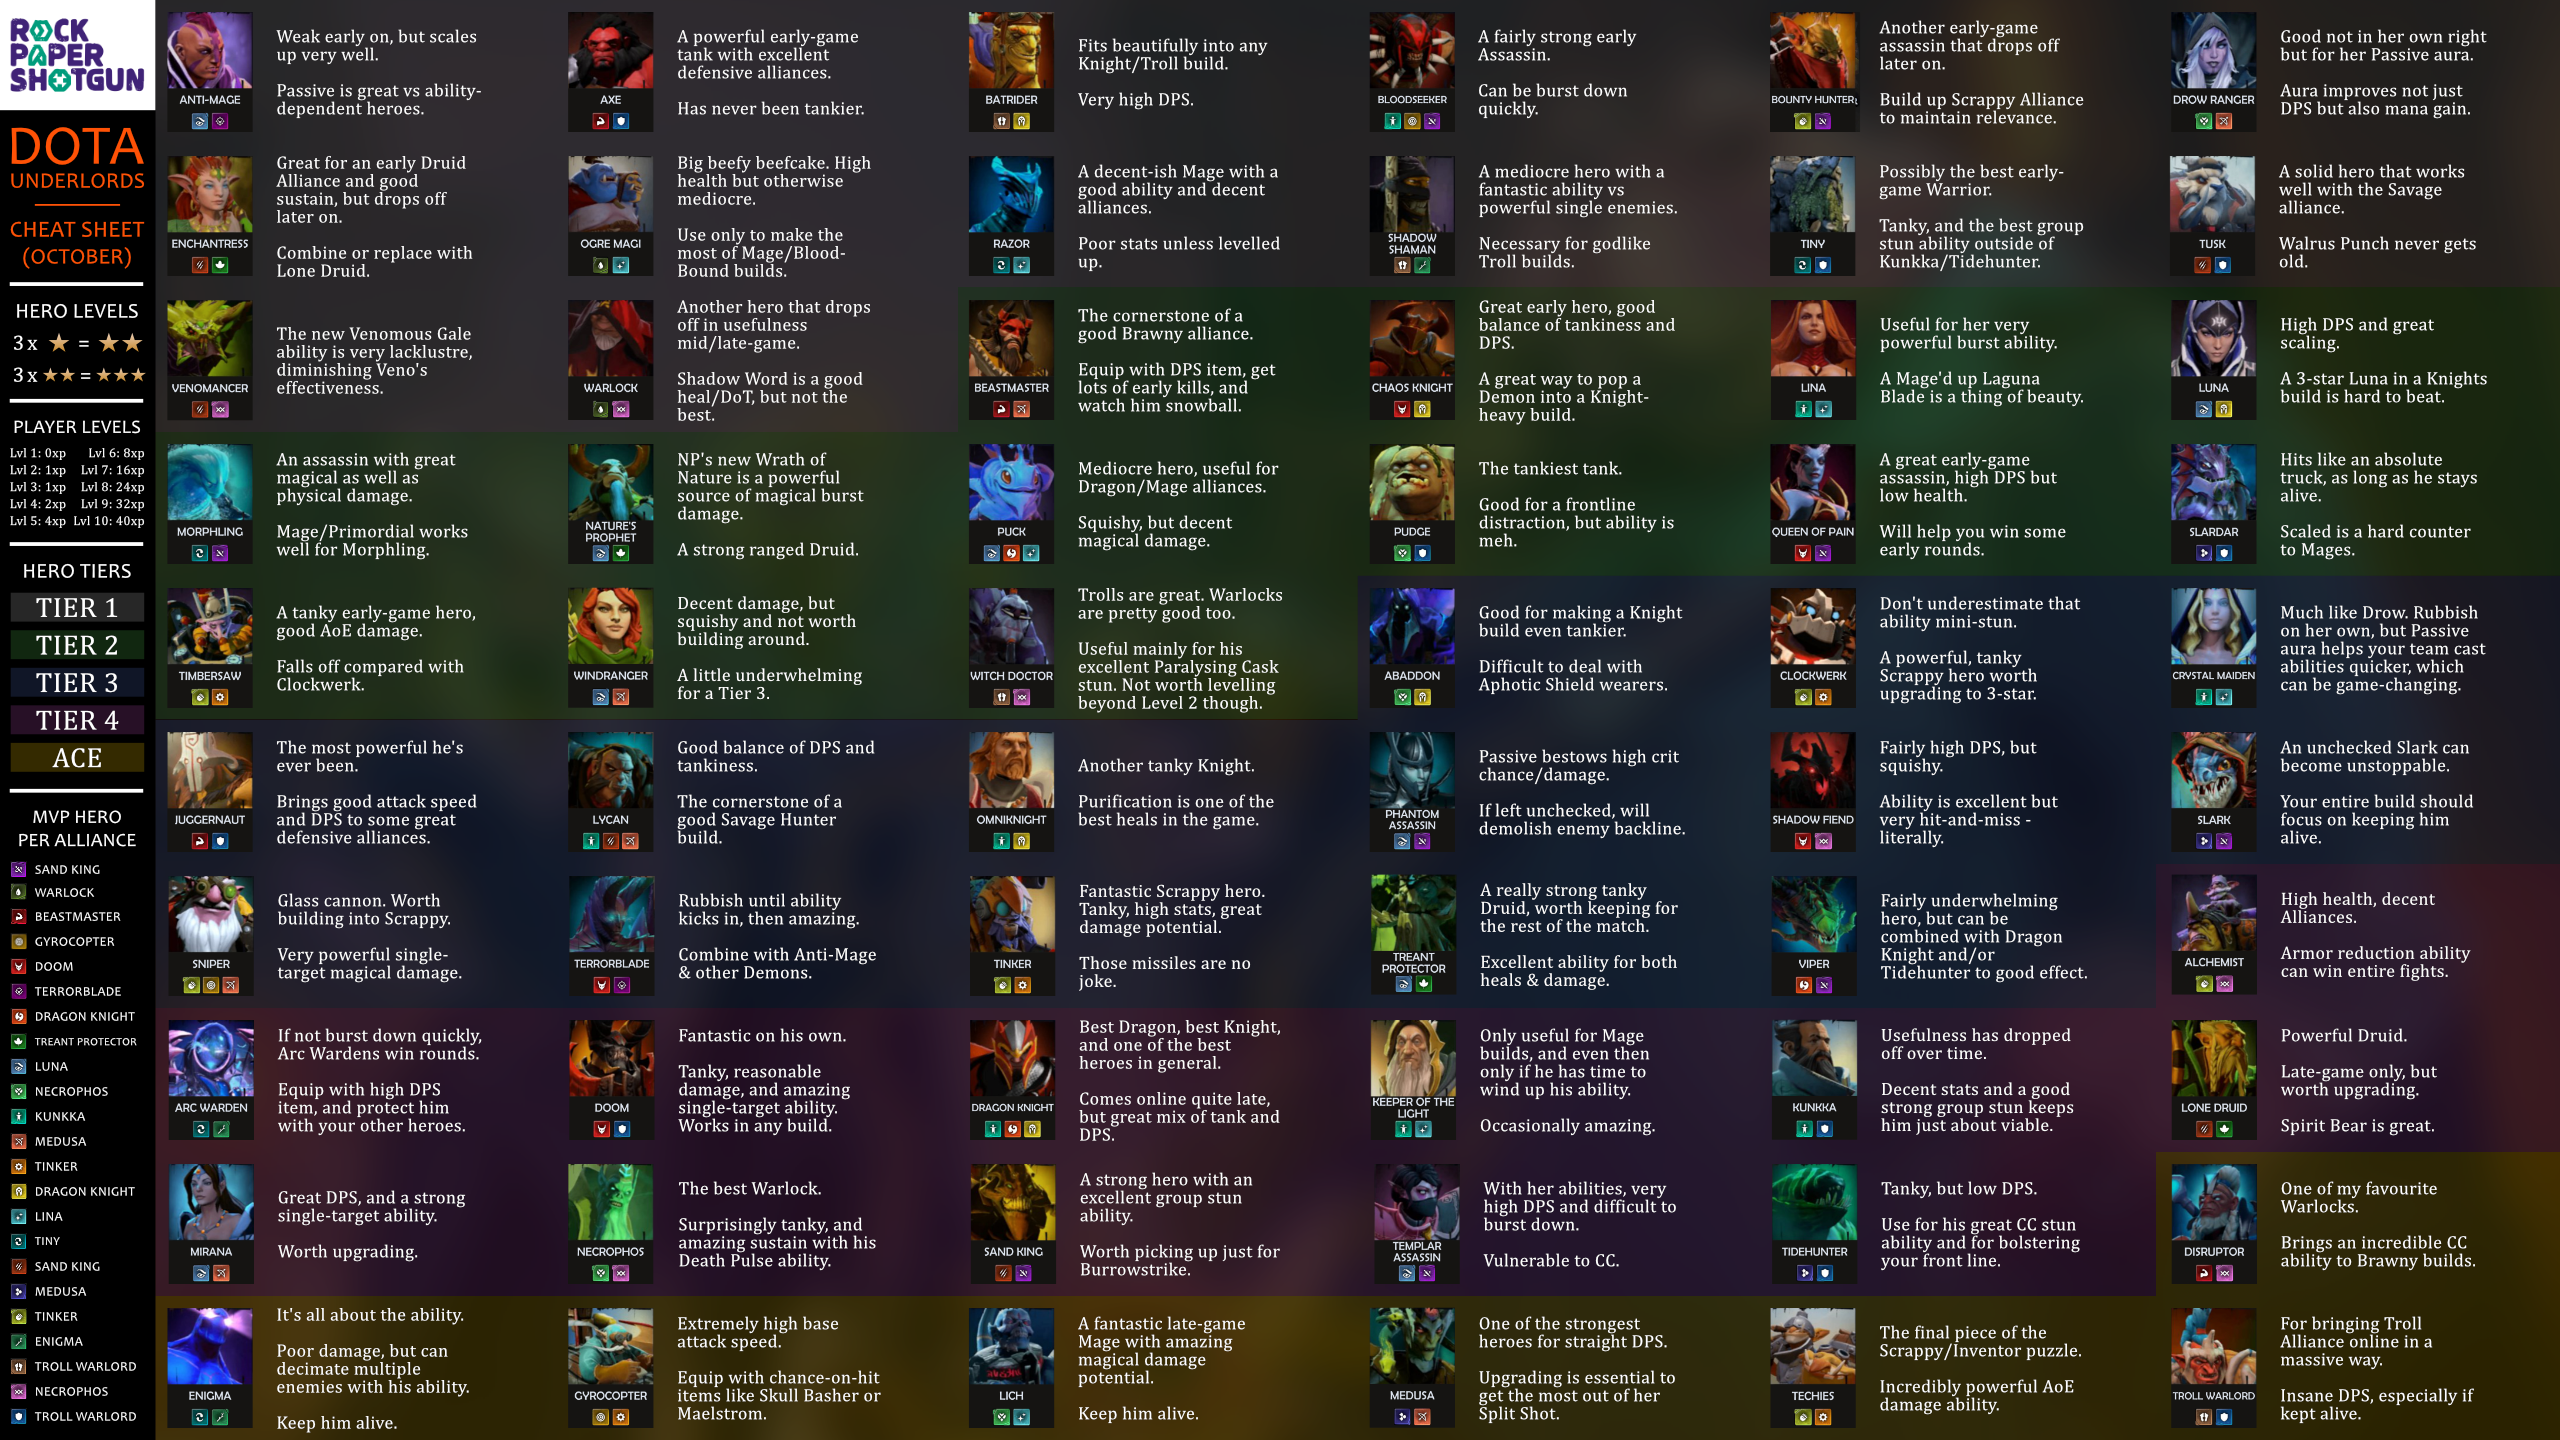 dota underlords heroes cheat sheet October